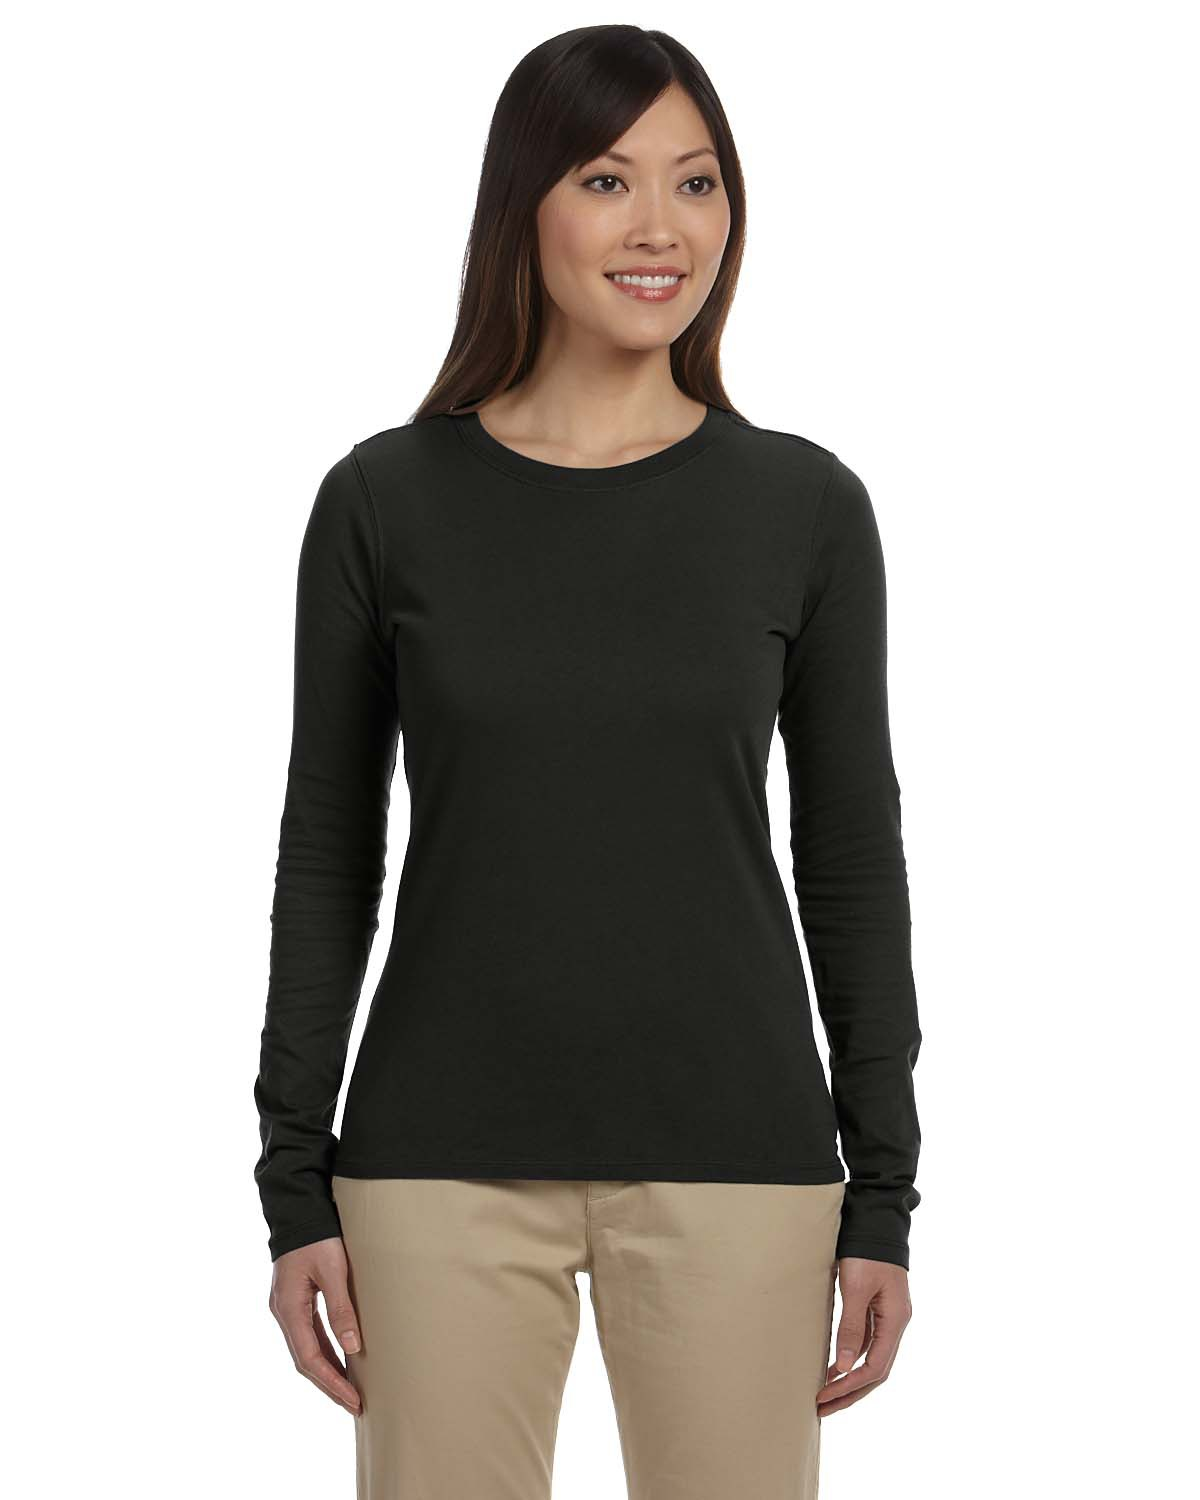 Sivvan Women's Comfort Long Sleeve T-Shirt/Underscrub Tee. by Sivvan. $ - $ $ 10 $ 12 49 Prime. FREE Shipping on eligible orders. Some sizes/colors are Prime eligible. out of 5 stars 1, WEKILI Women's Tops Long Sleeve Lace Scoop Neck A-Line Tunic Blouse. by WEKILI.